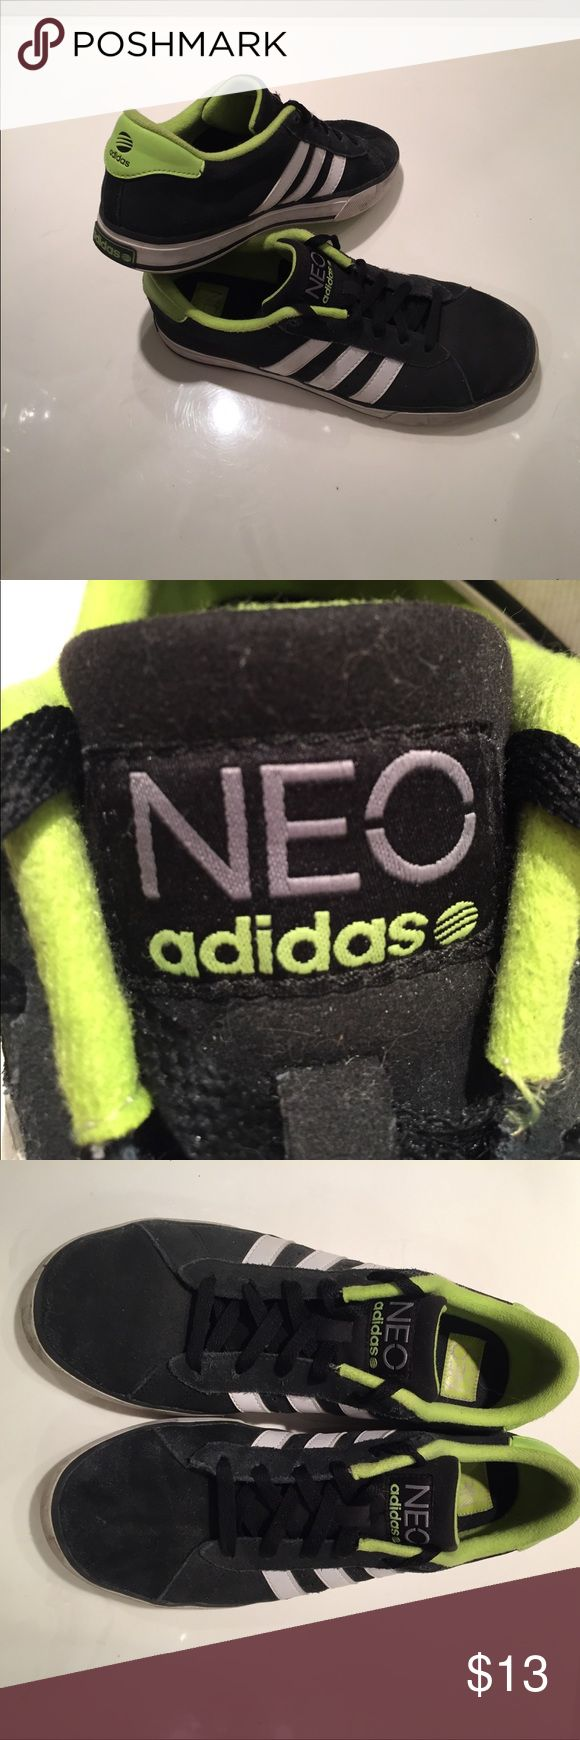 Adidas Neo Sneakers Black suede sneakers with neon green throughout! A little bit dirty and the aglet on one part of the lace is missing. Also a little bit of wear along the outside of the sole. Still really cool shoes!👍🏼 adidas Shoes Sneakers